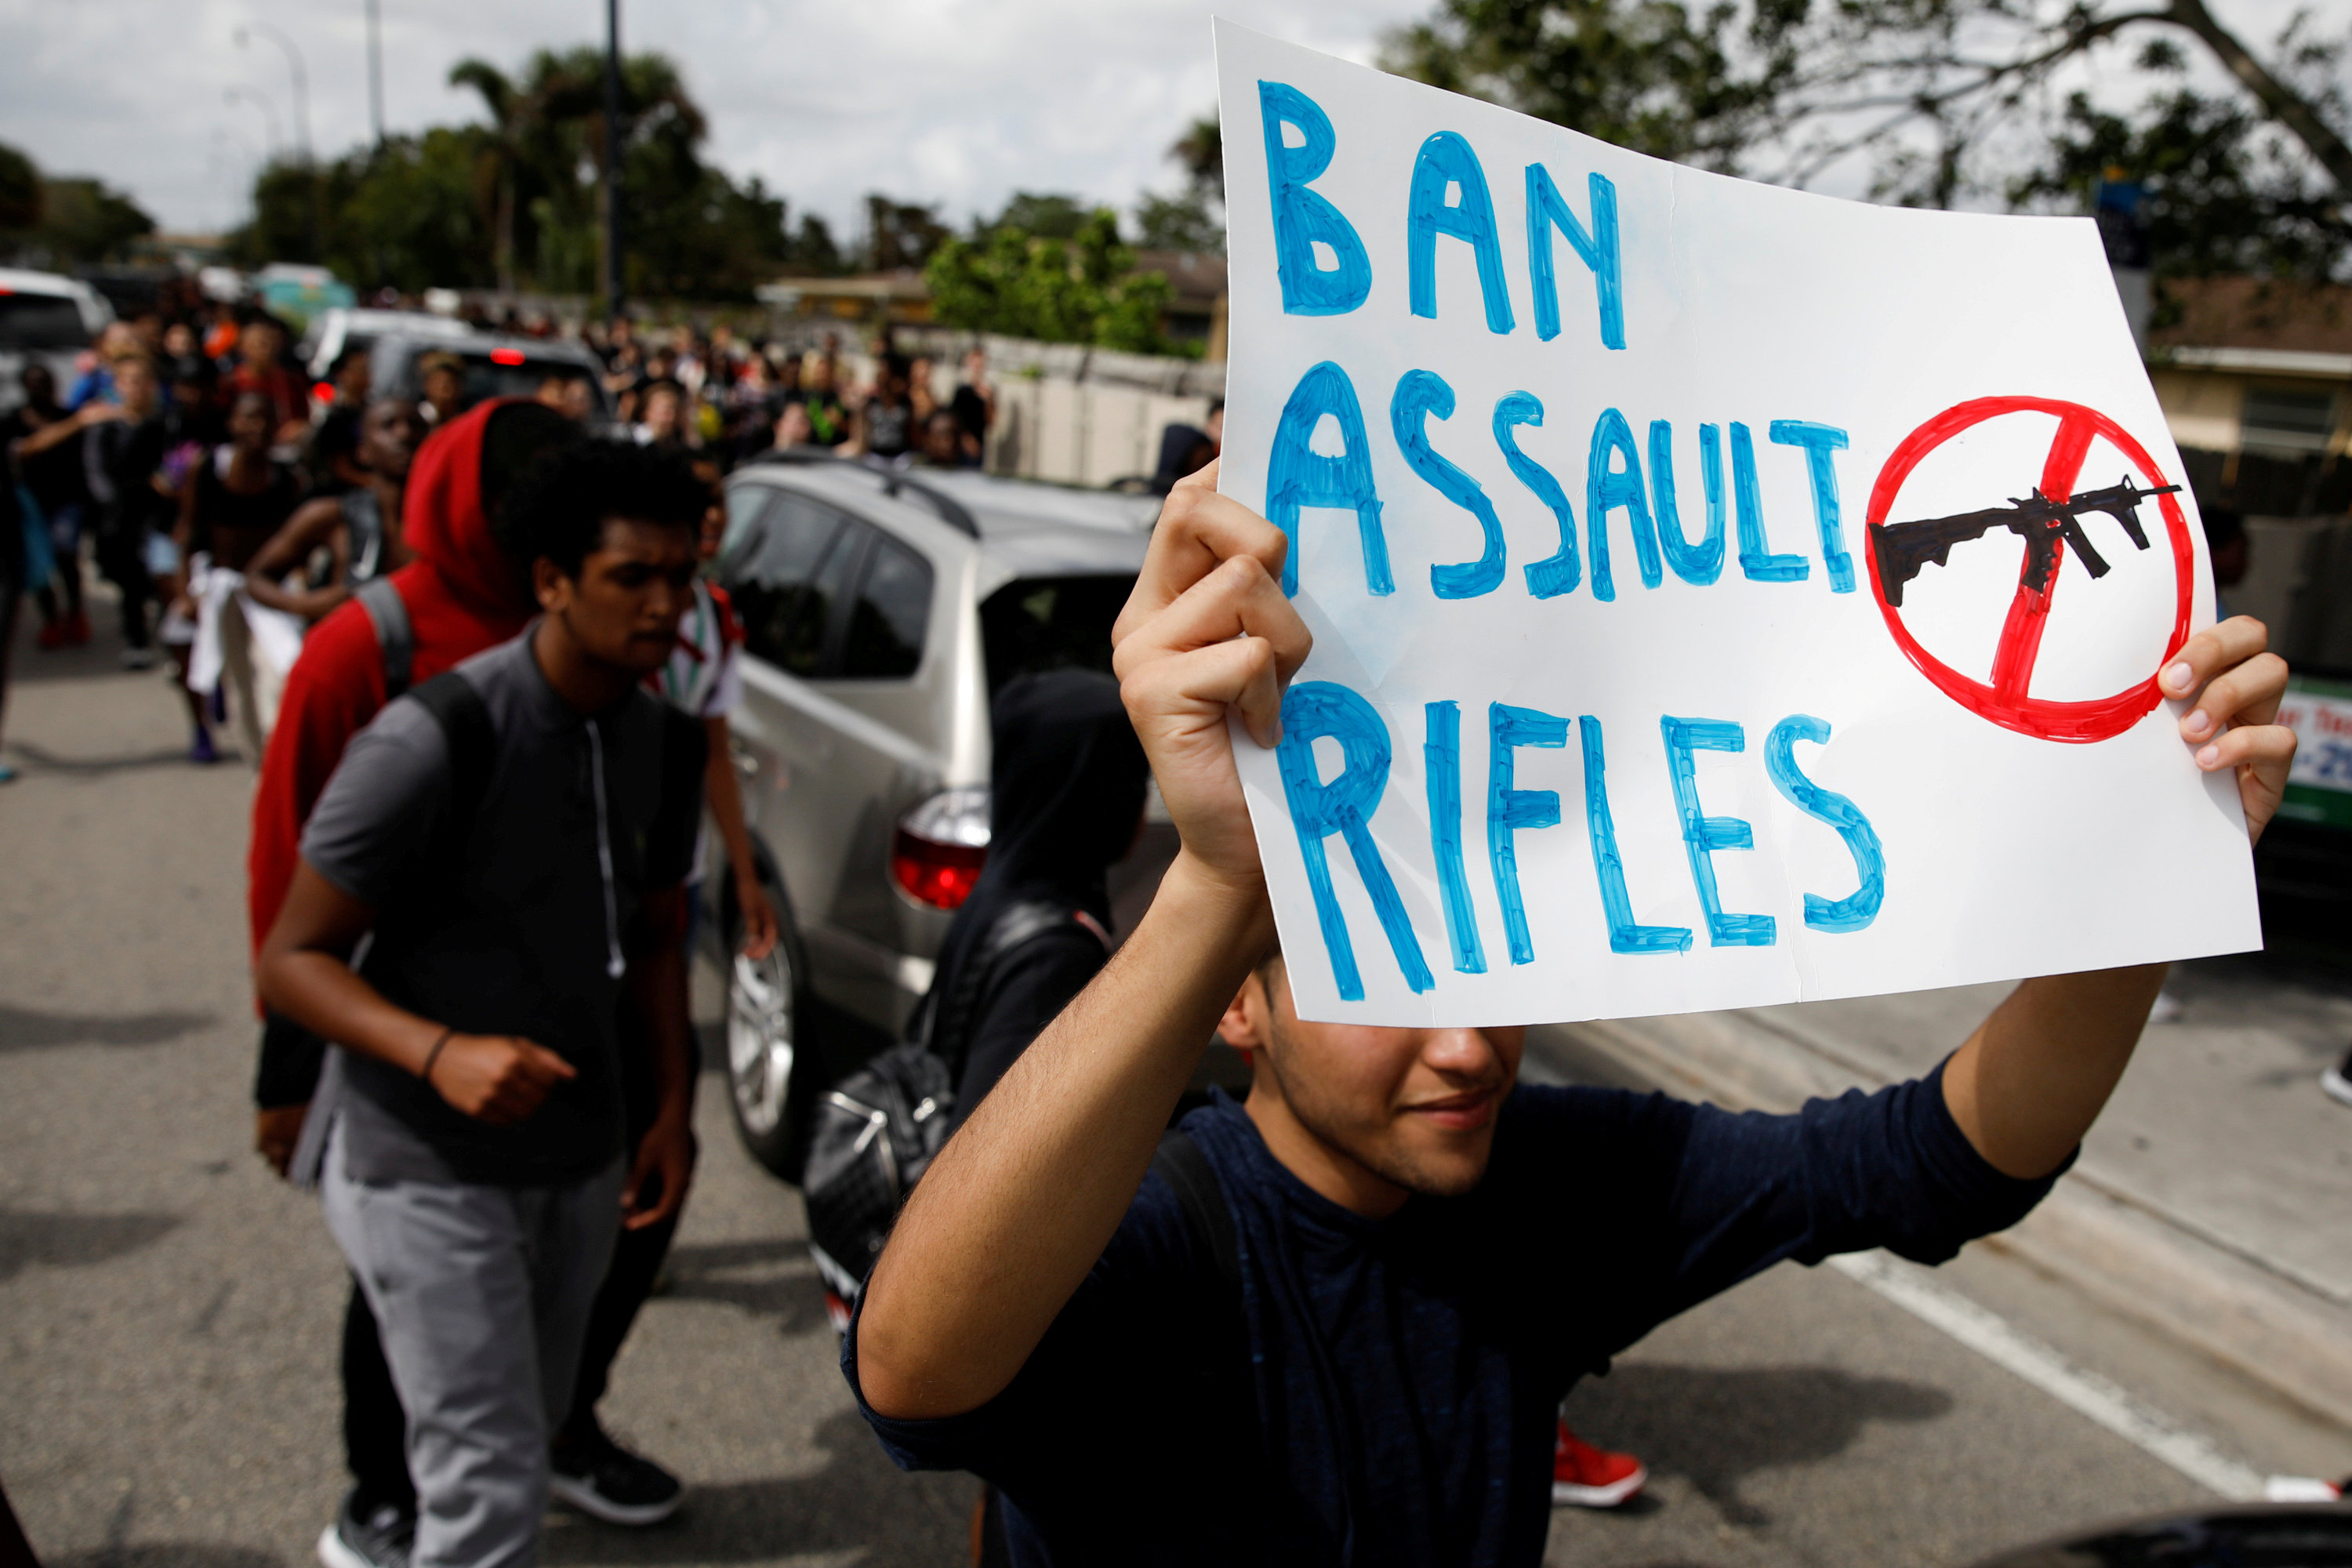 FILE PHOTO: Students from South Plantation High School carrying placards and shouting slogans walk on the street during a protest in support of the gun control, following a mass shooting at Marjory Stoneman Douglas High School, in Plantation, Florida, February 21, 2018. REUTERS/Carlos Garcia Rawlins/File Photo